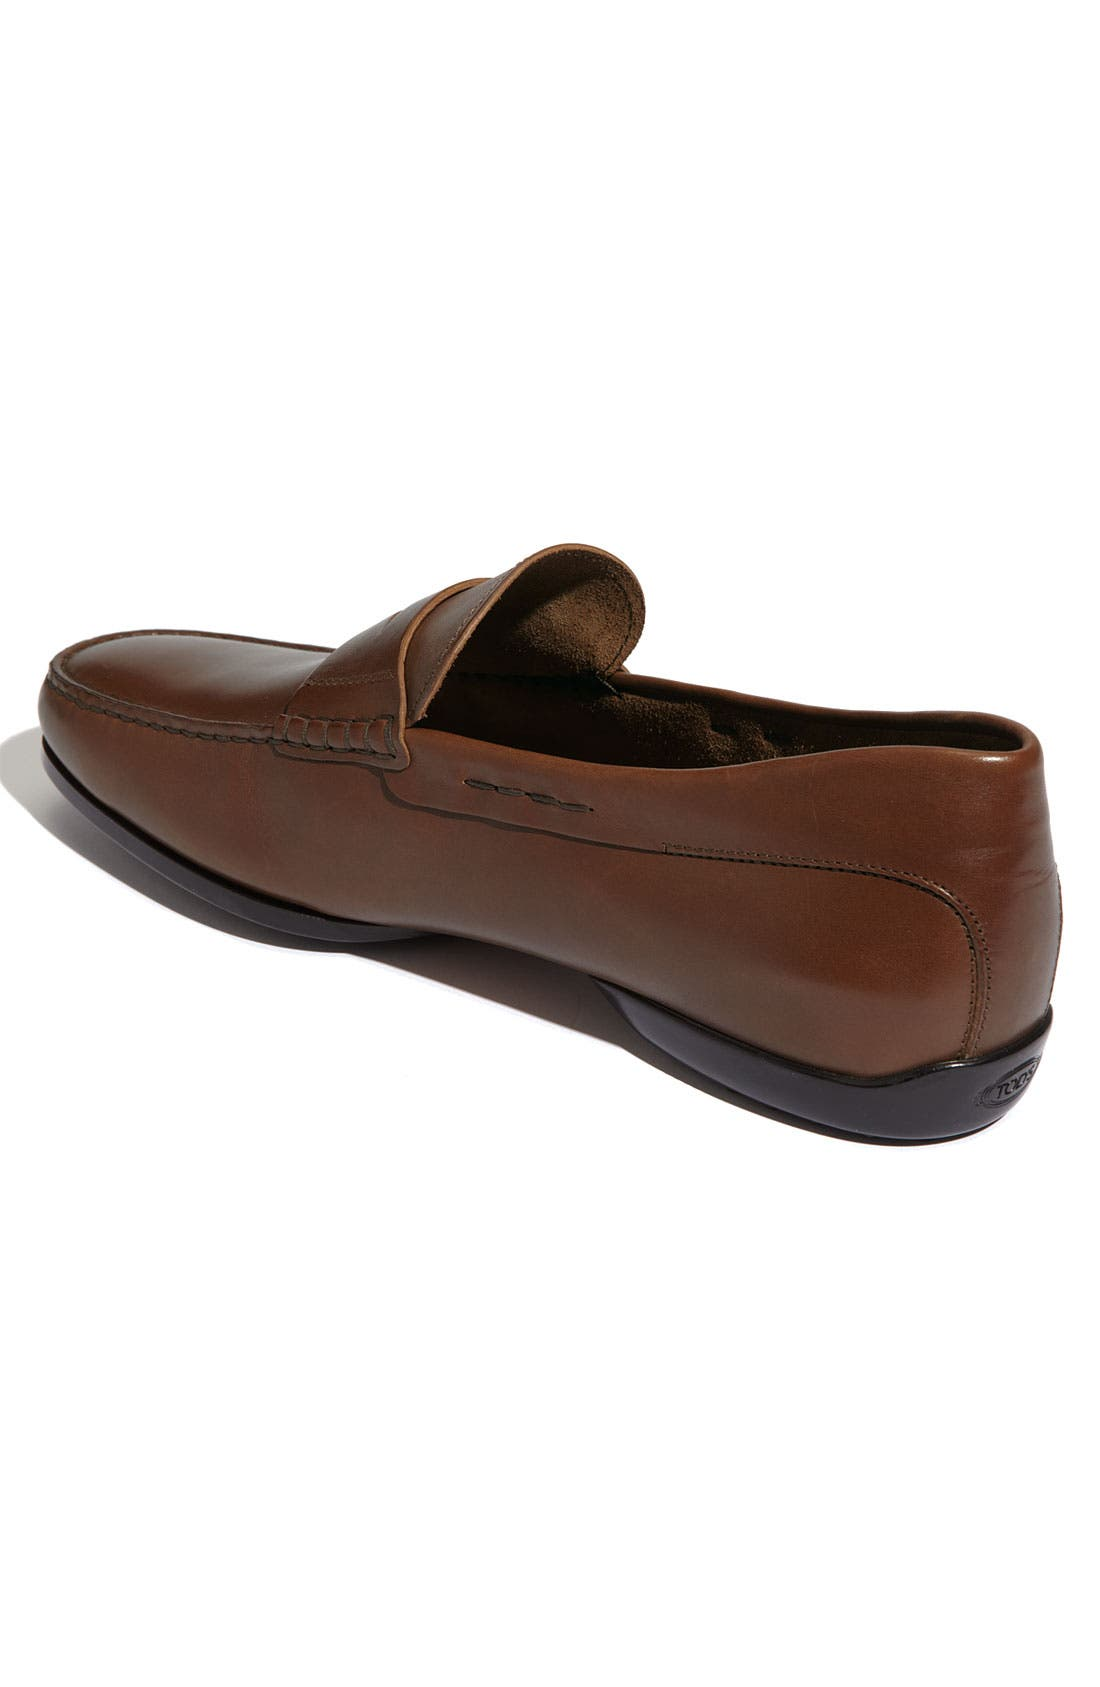 Alternate Image 2  - Tod's 'Brooklyn' Penny Loafer